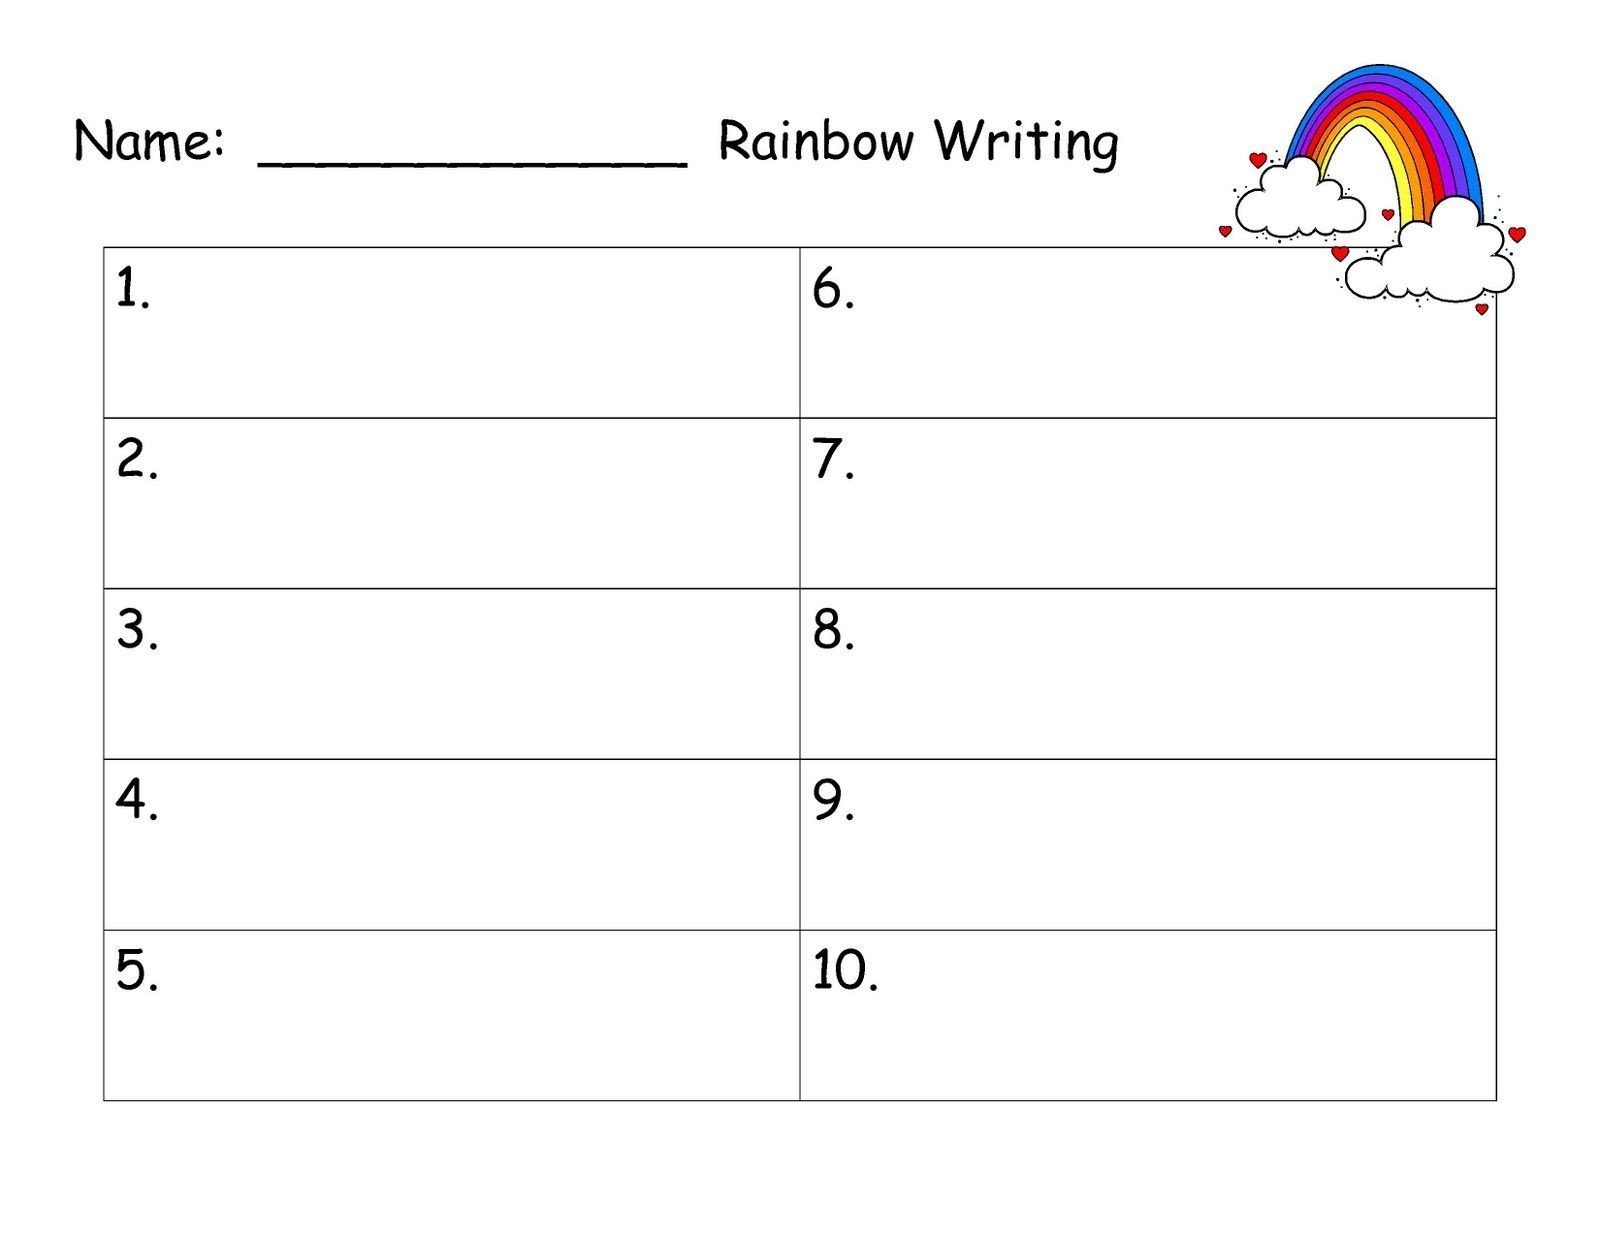 Rainbow Writing Worksheet Monkey Business First Grade Style Time Away to Create